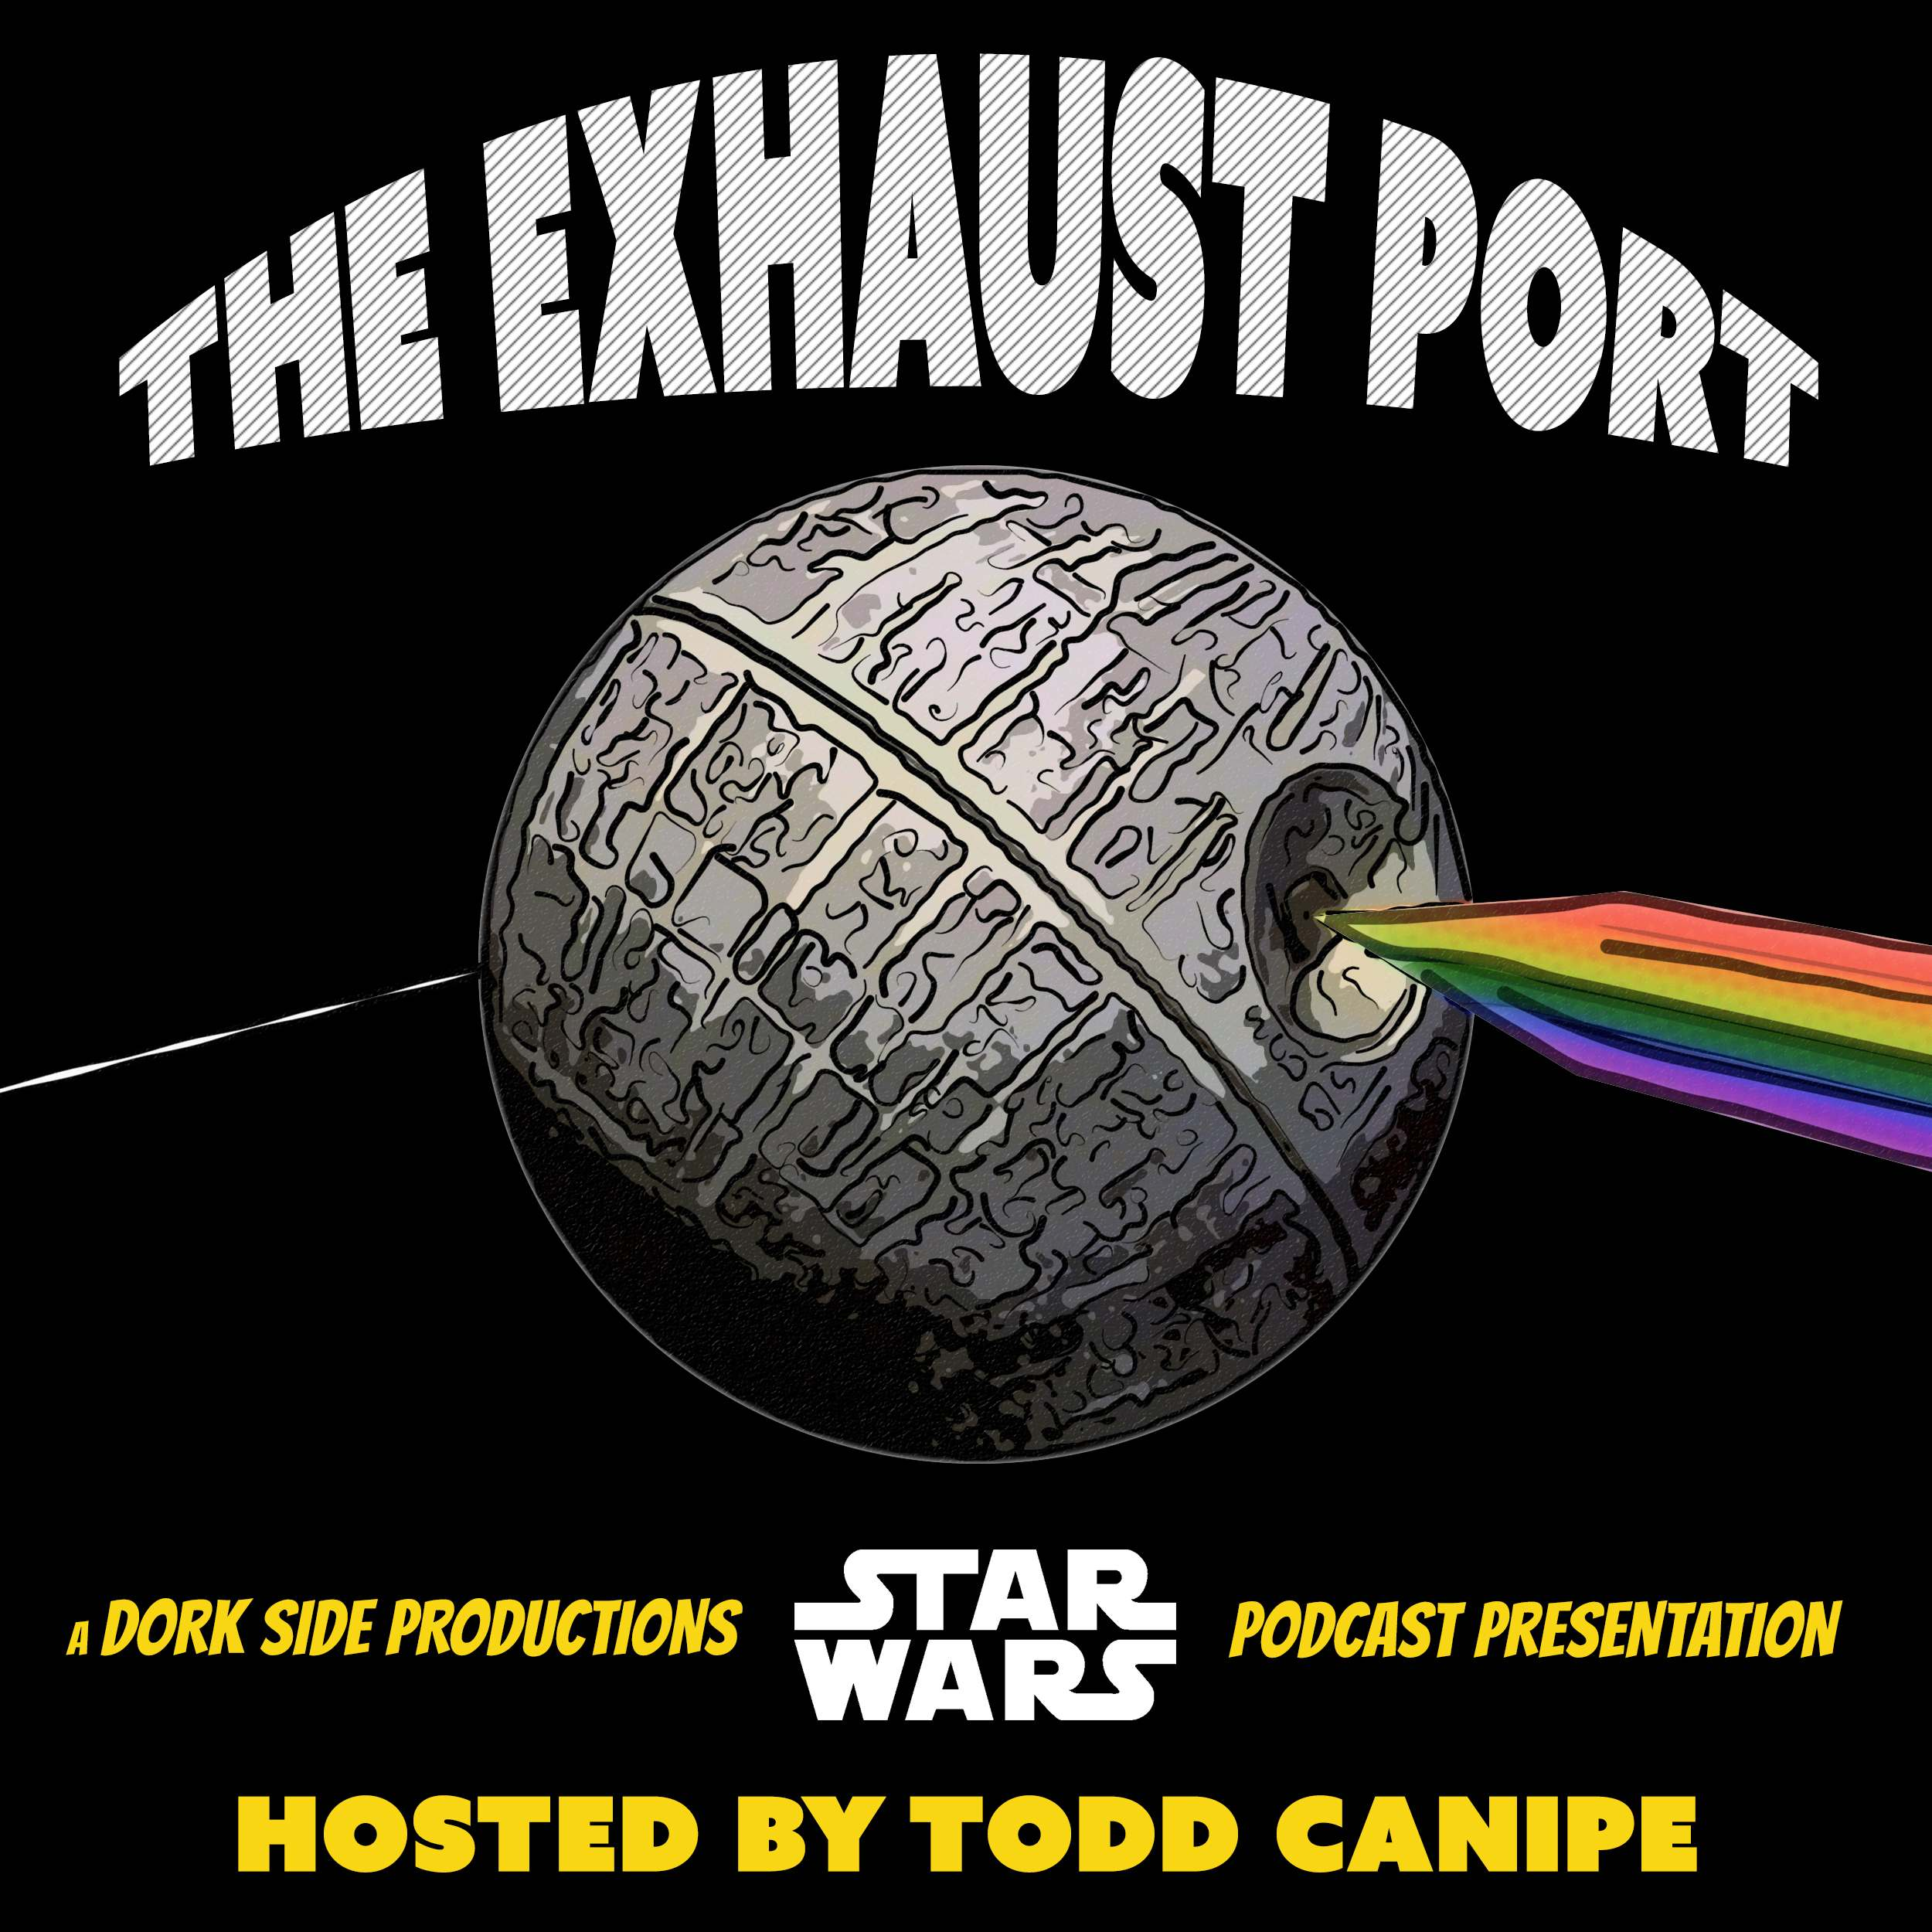 The Exhaust Port - a Star Wars Podcast show art